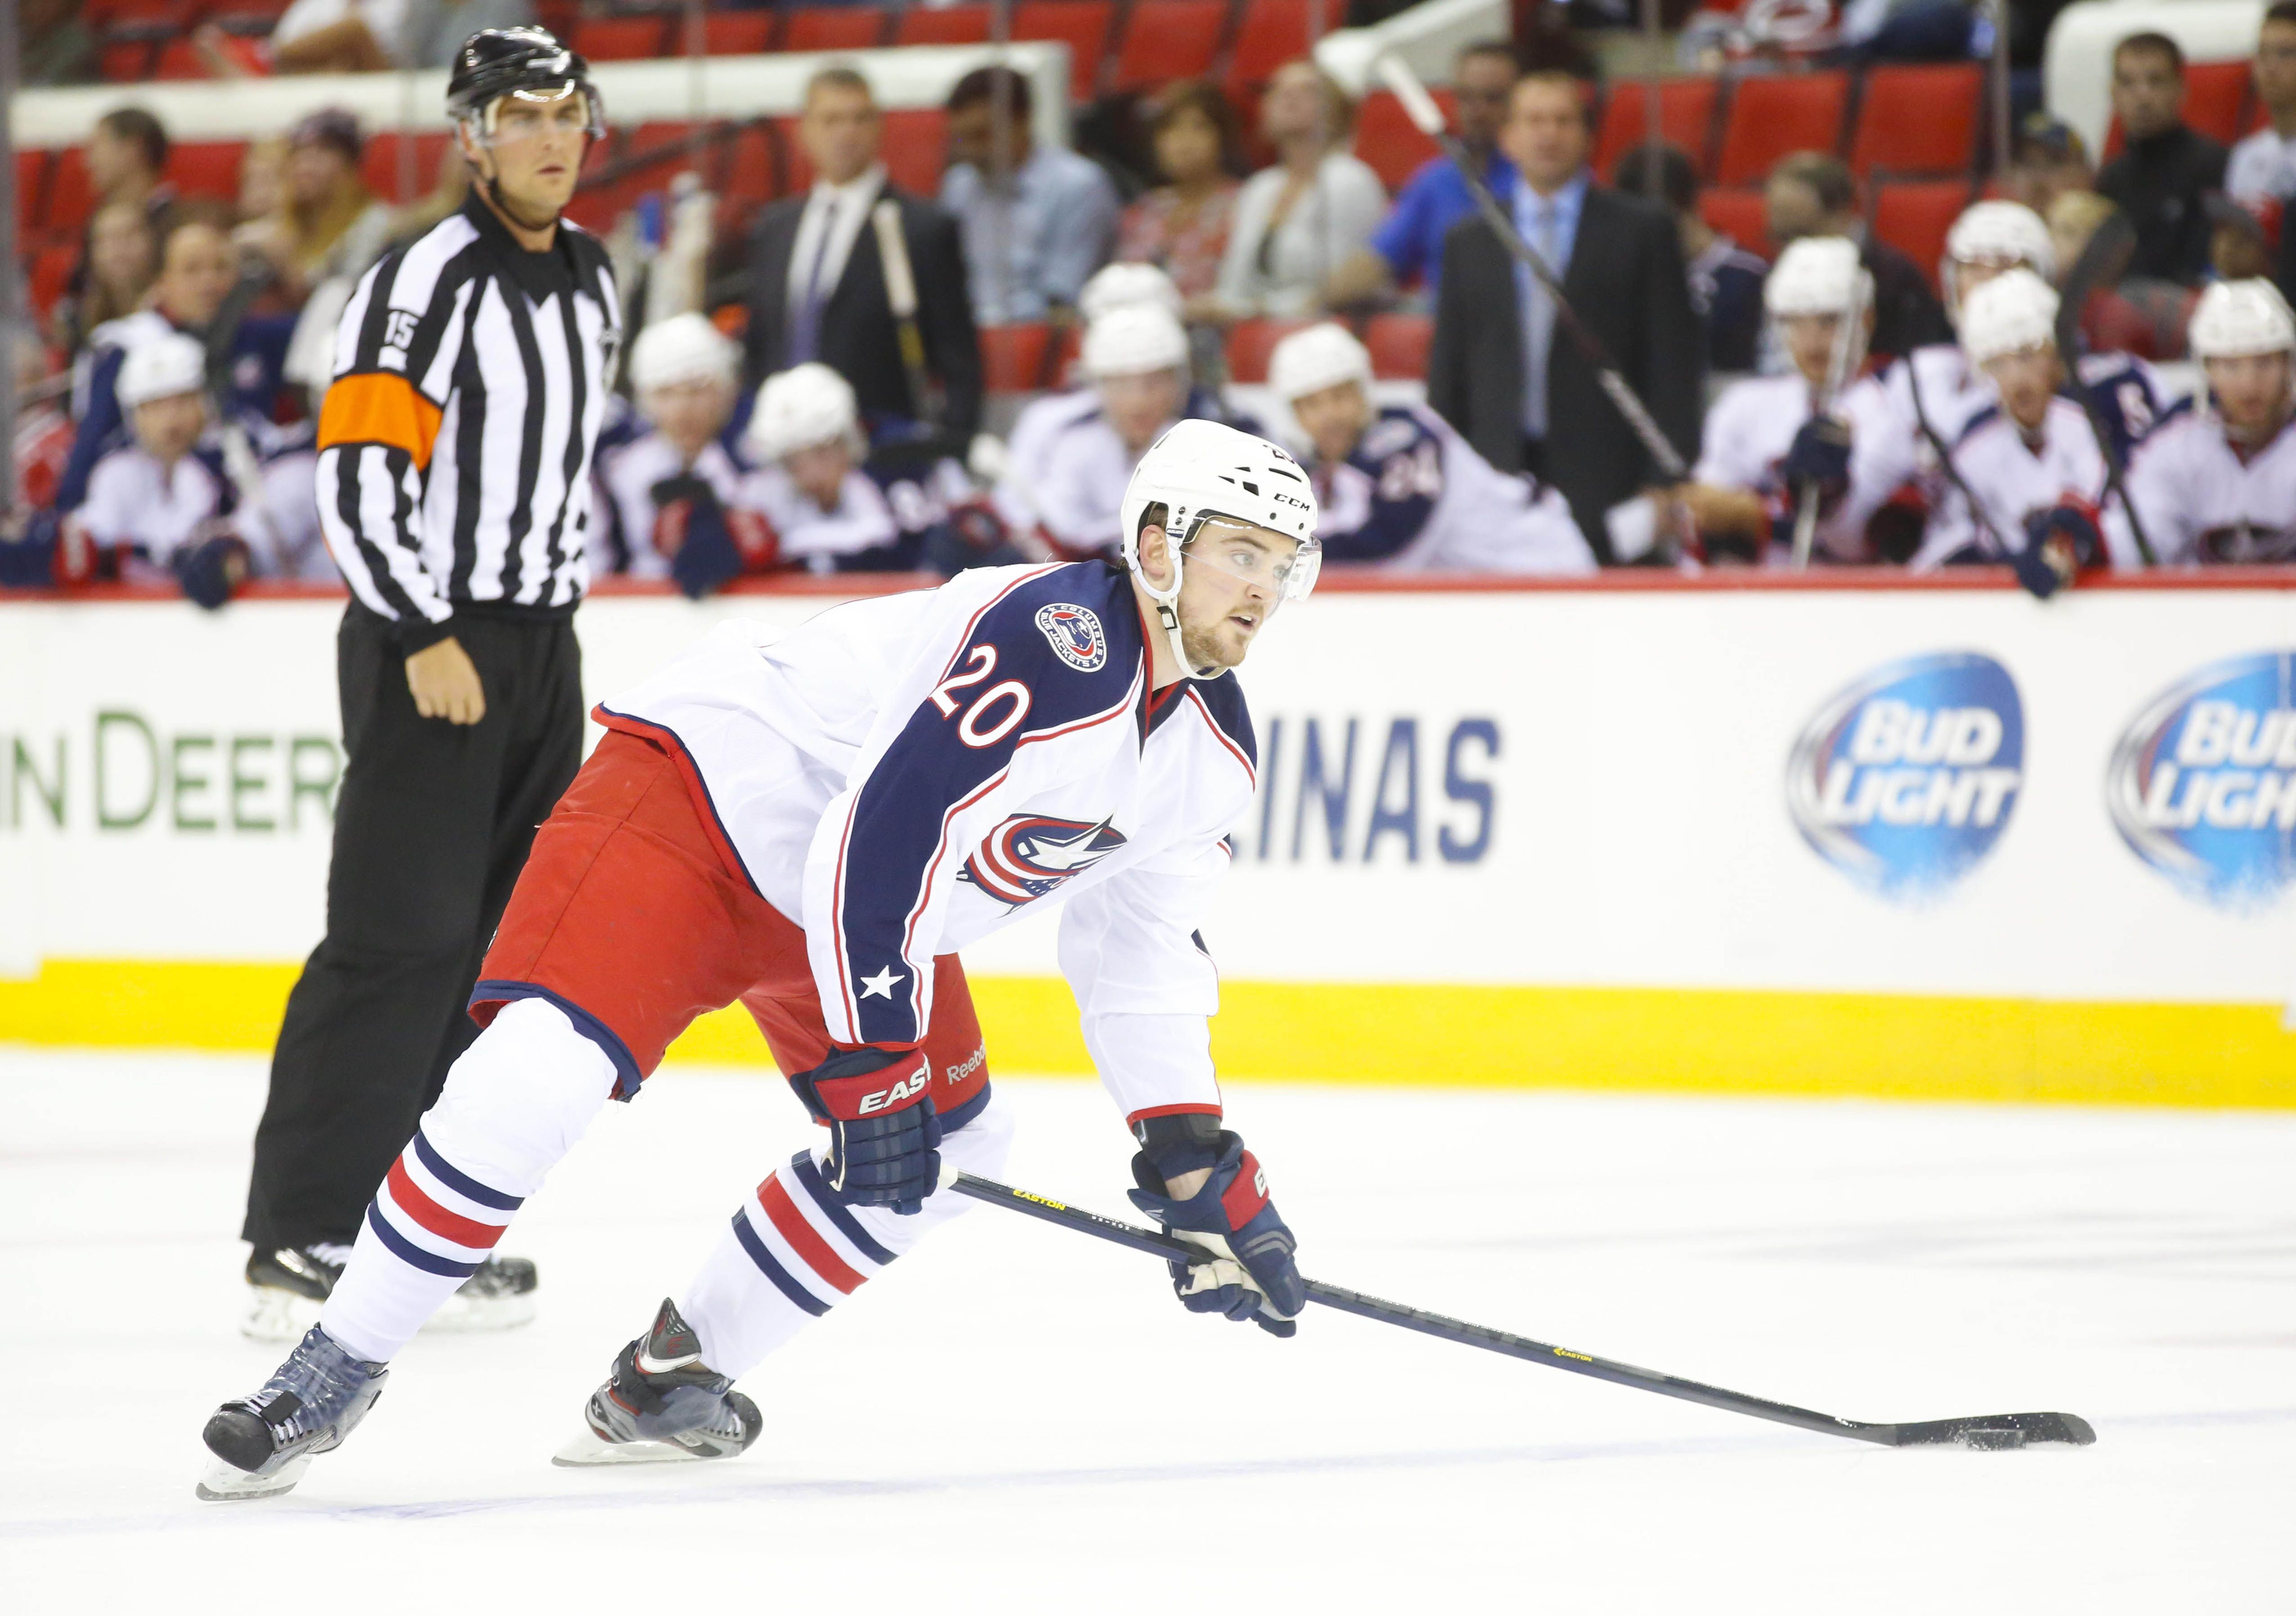 CrowdCam Hot Shot: Columbus Blue Jackets defensemen Tim Erixon looks to take a shot against the Carolina Hurricanes at PNC Center. The Blue Jackets defeated the Hurricanes 5-4. Photo by James Guillory